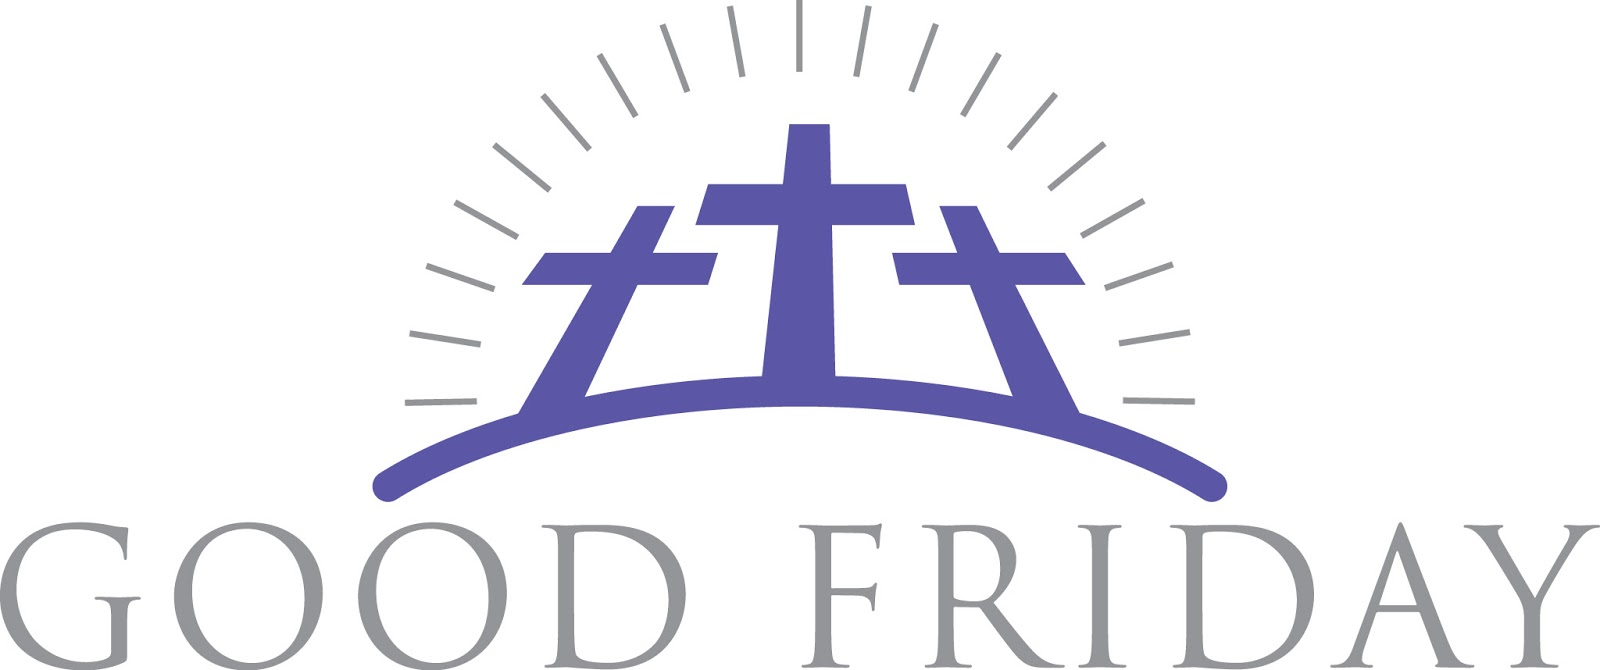 1600x670 Good Friday Clipart Beautiful Clipart Of Good Friday 2018